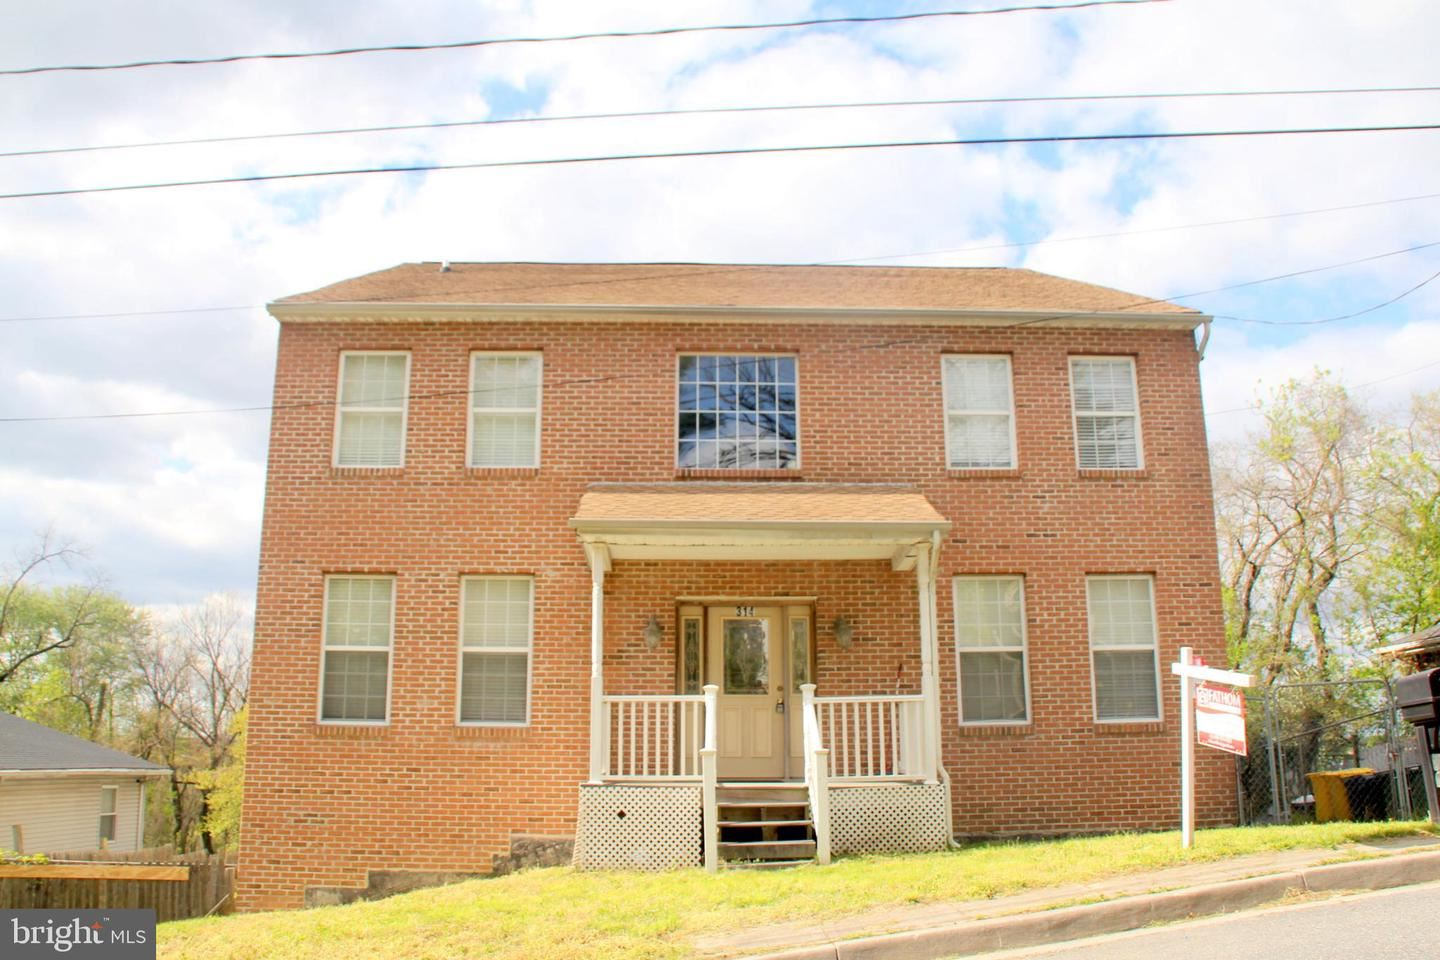 314 ELIZABETH AVE, Baltimore, MD 21225 - MLS#: MDAA464846